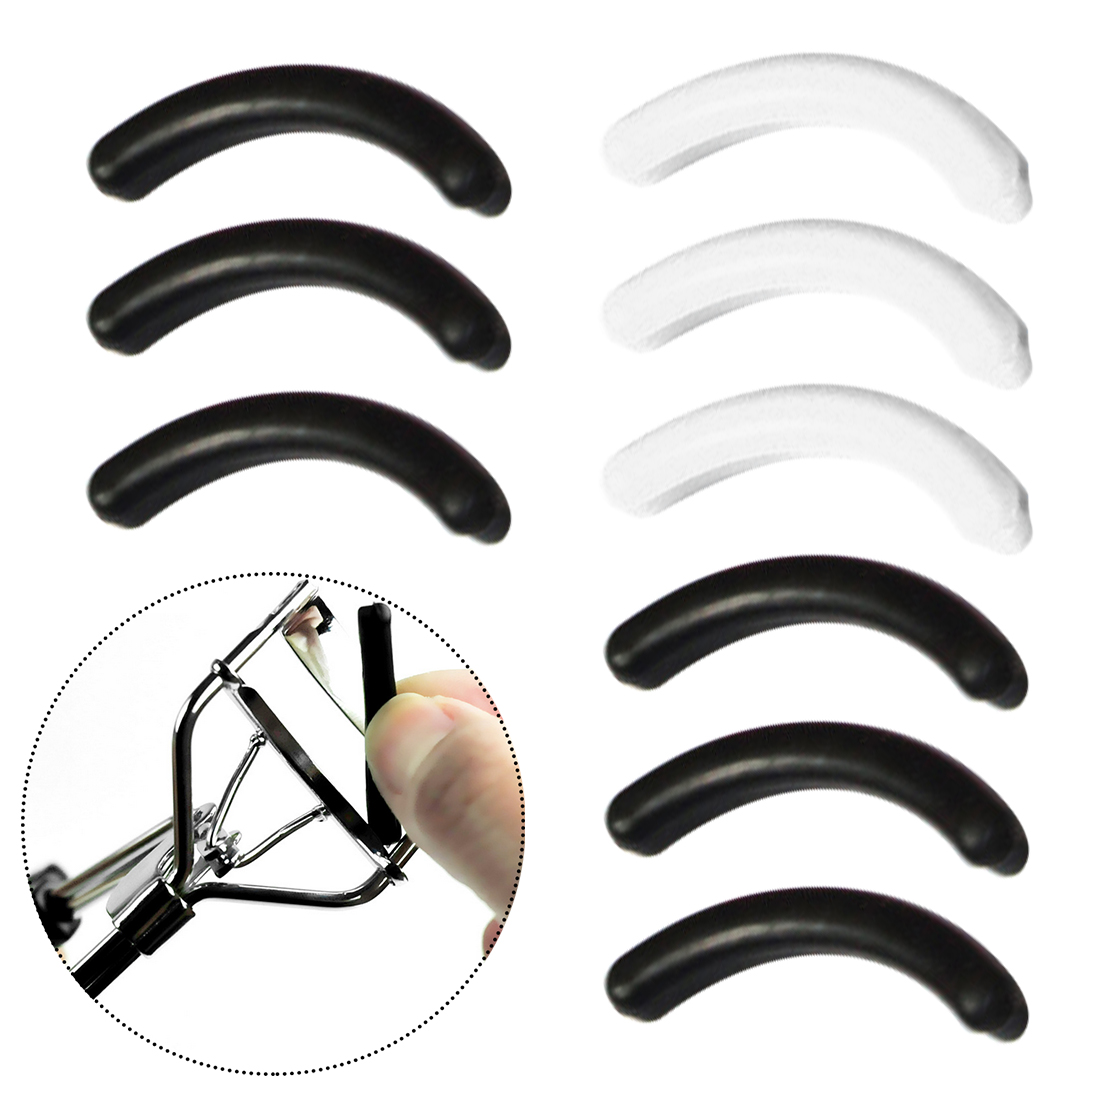 High Elastic Replacement Rubber Pad 12pcs Bulk Rubber Eyelash Curler Supplement Strip Long-lasting Eyelash Curling Replacement